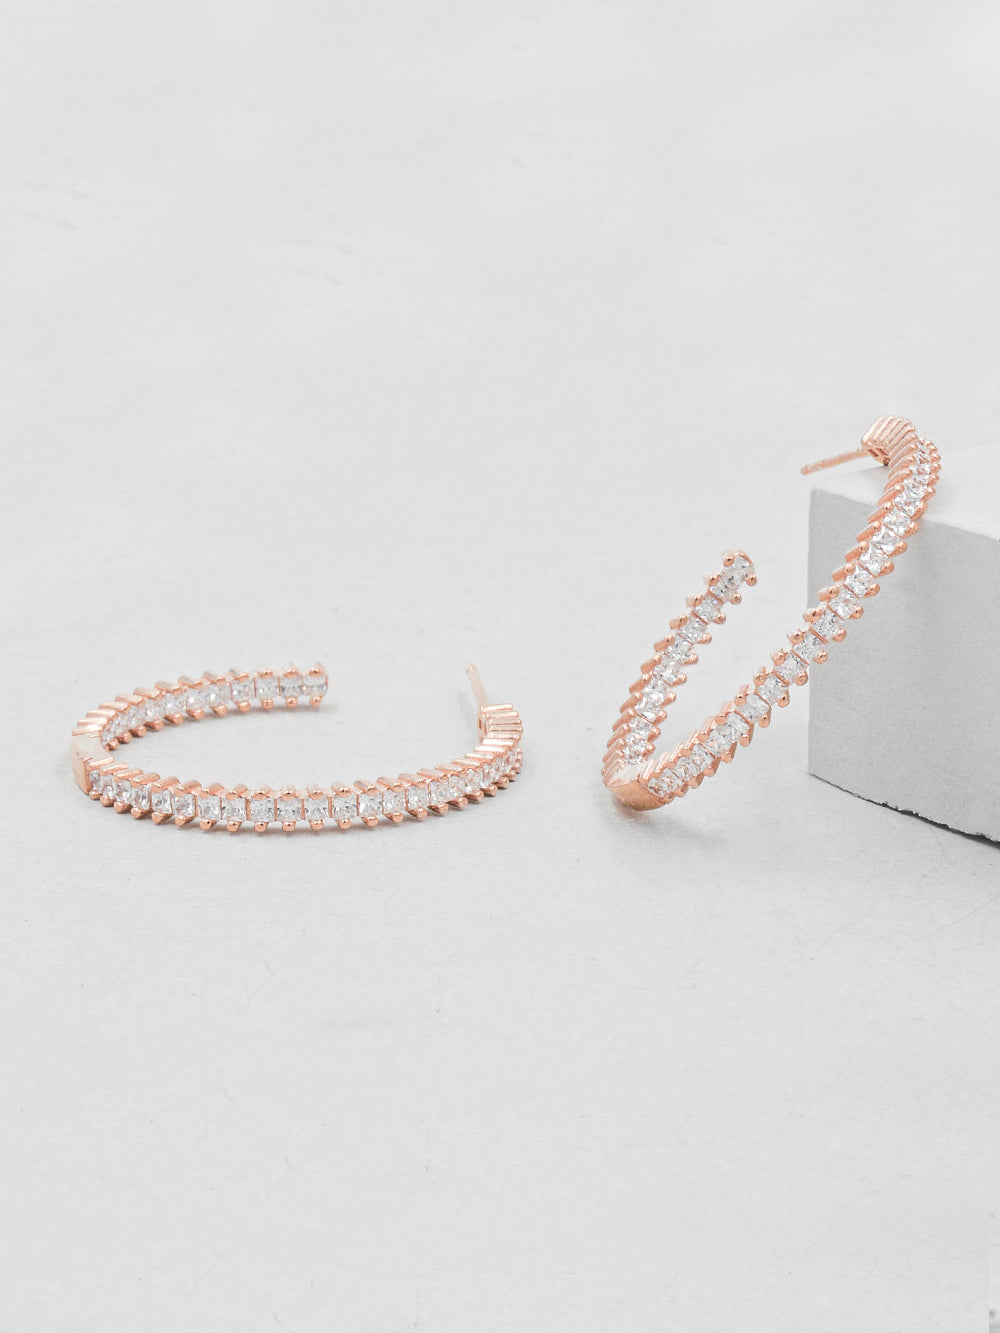 Rose Gold Plated Vertical baguette Hoops Earrings by The Faint Hearted Jewelry